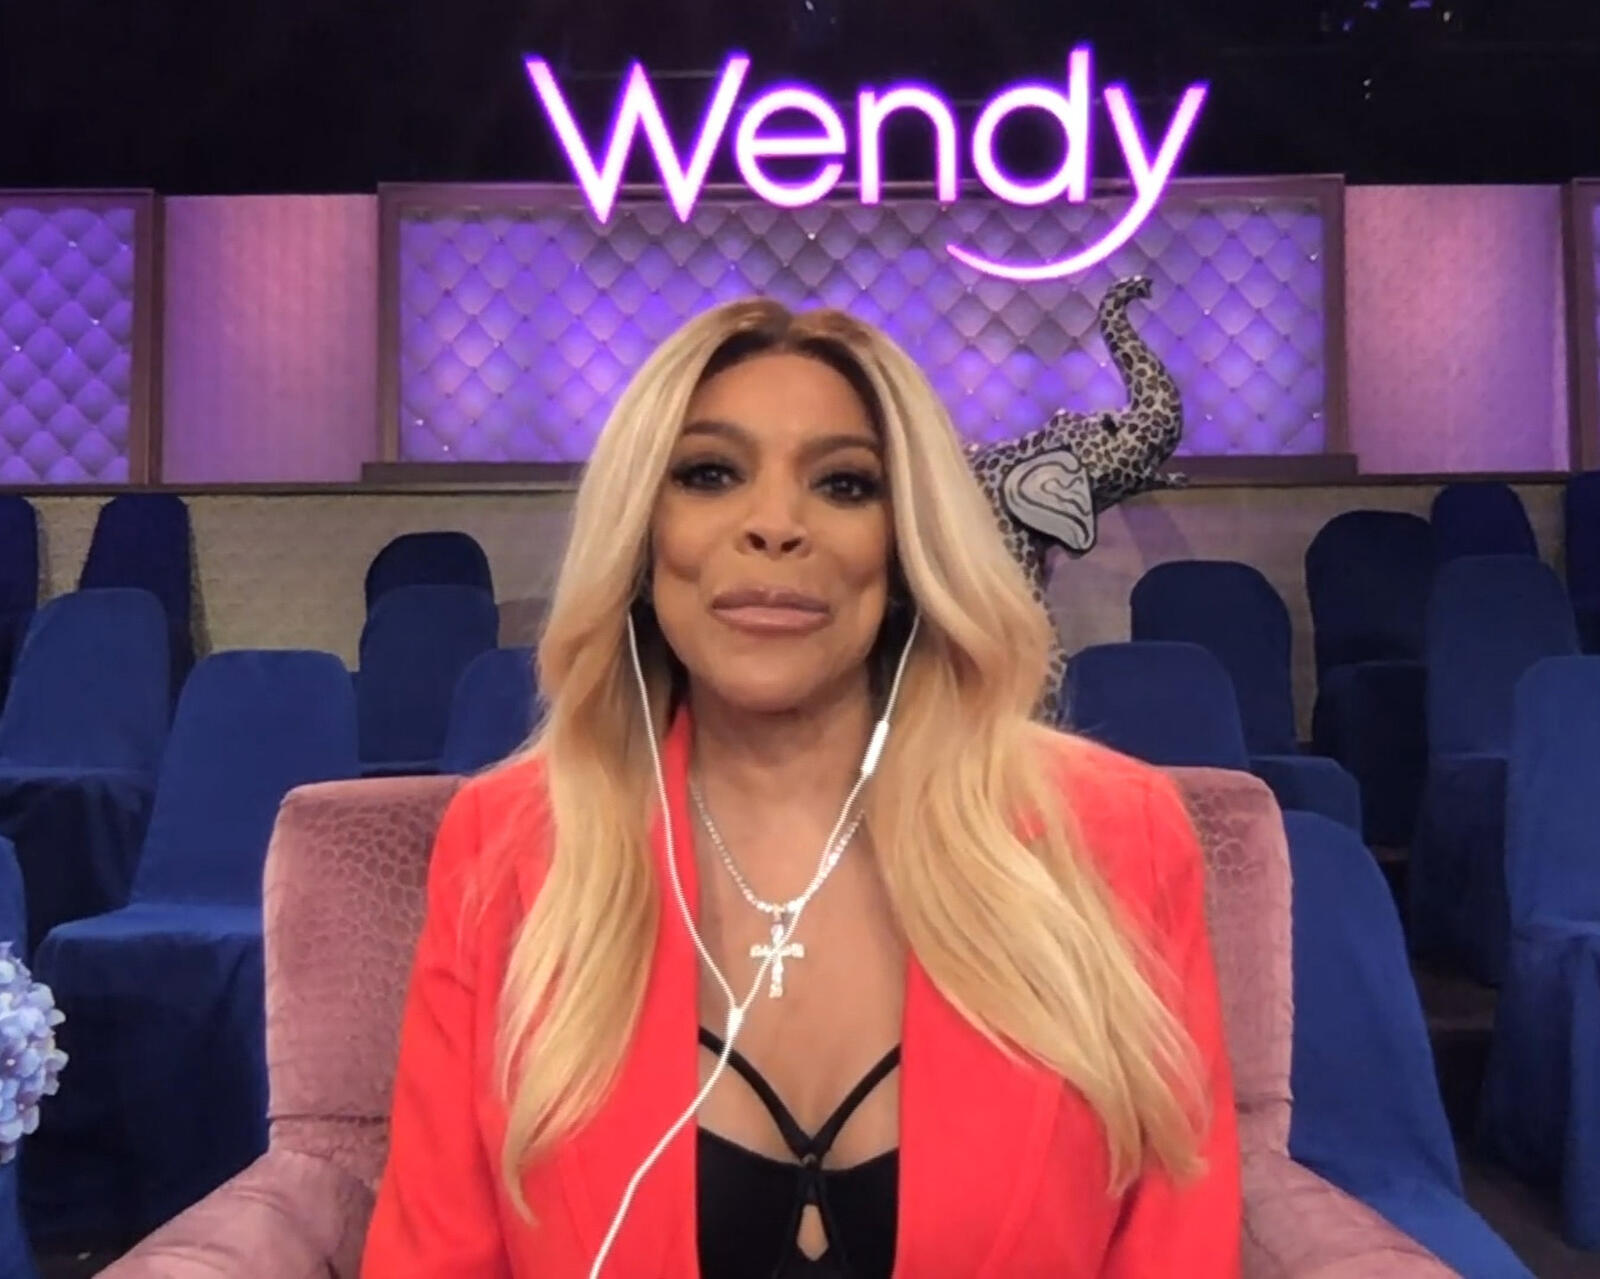 206: 06/14/21 - Wendy Williams' 'Hot Girl Summer'—Gushes Over Gary Owen & Has A Lit Night In With Lamar Odom